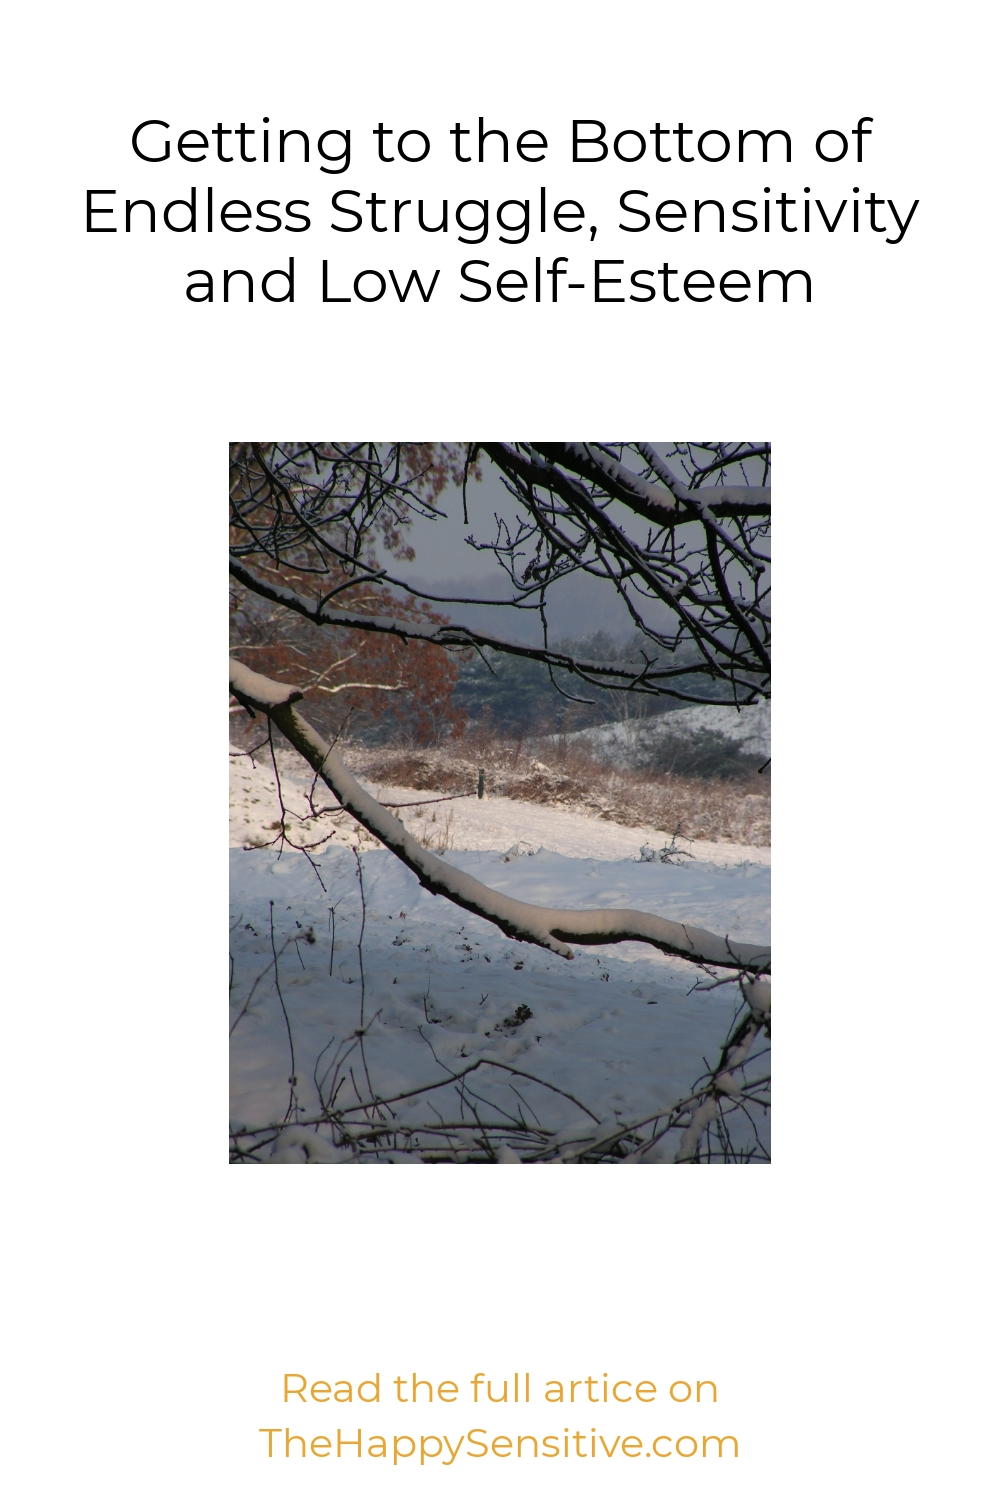 Getting to the Bottom of Endless Struggle, Sensitivity and Low Self-Esteem